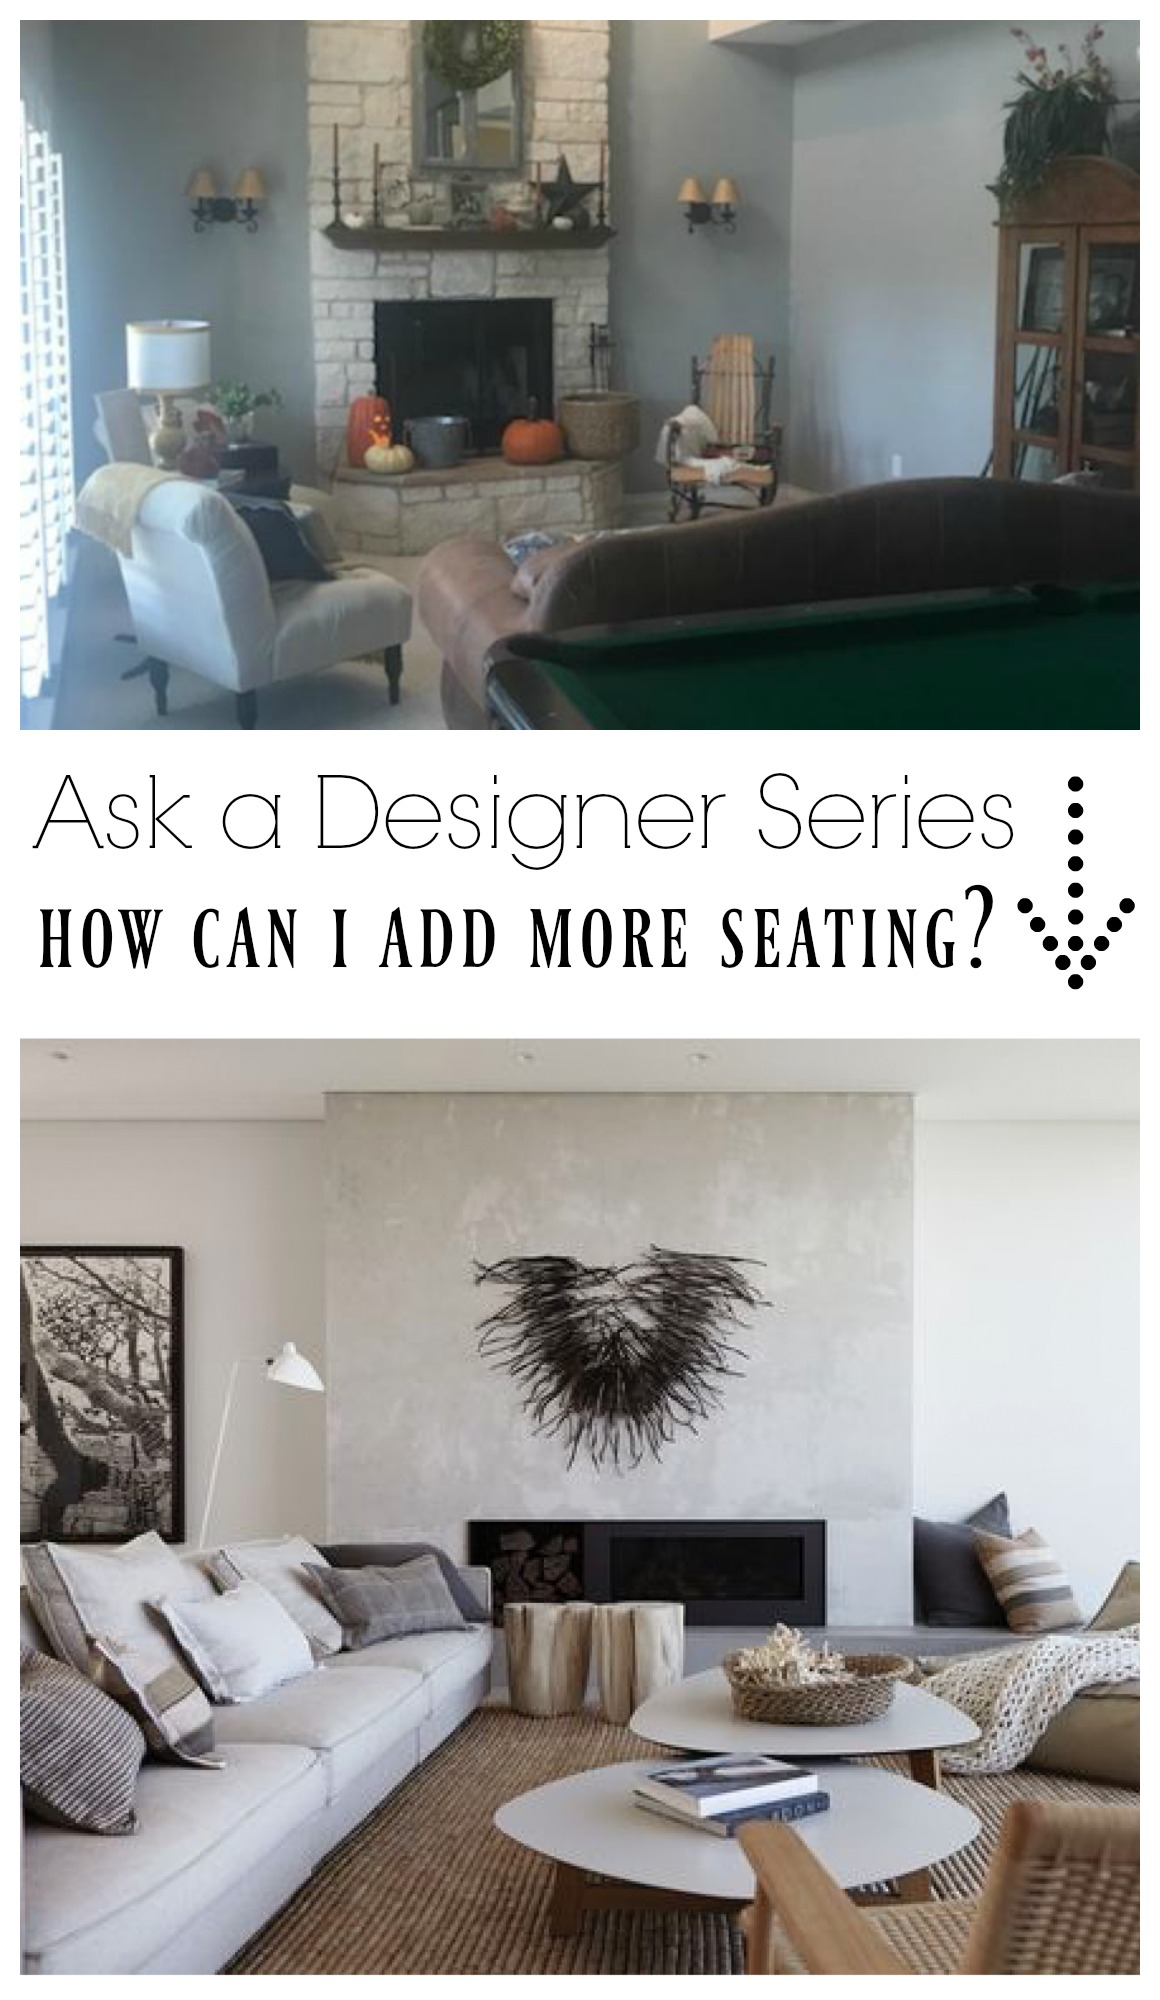 Ask a Designer Series- How can I add more Seating to our Family Room?